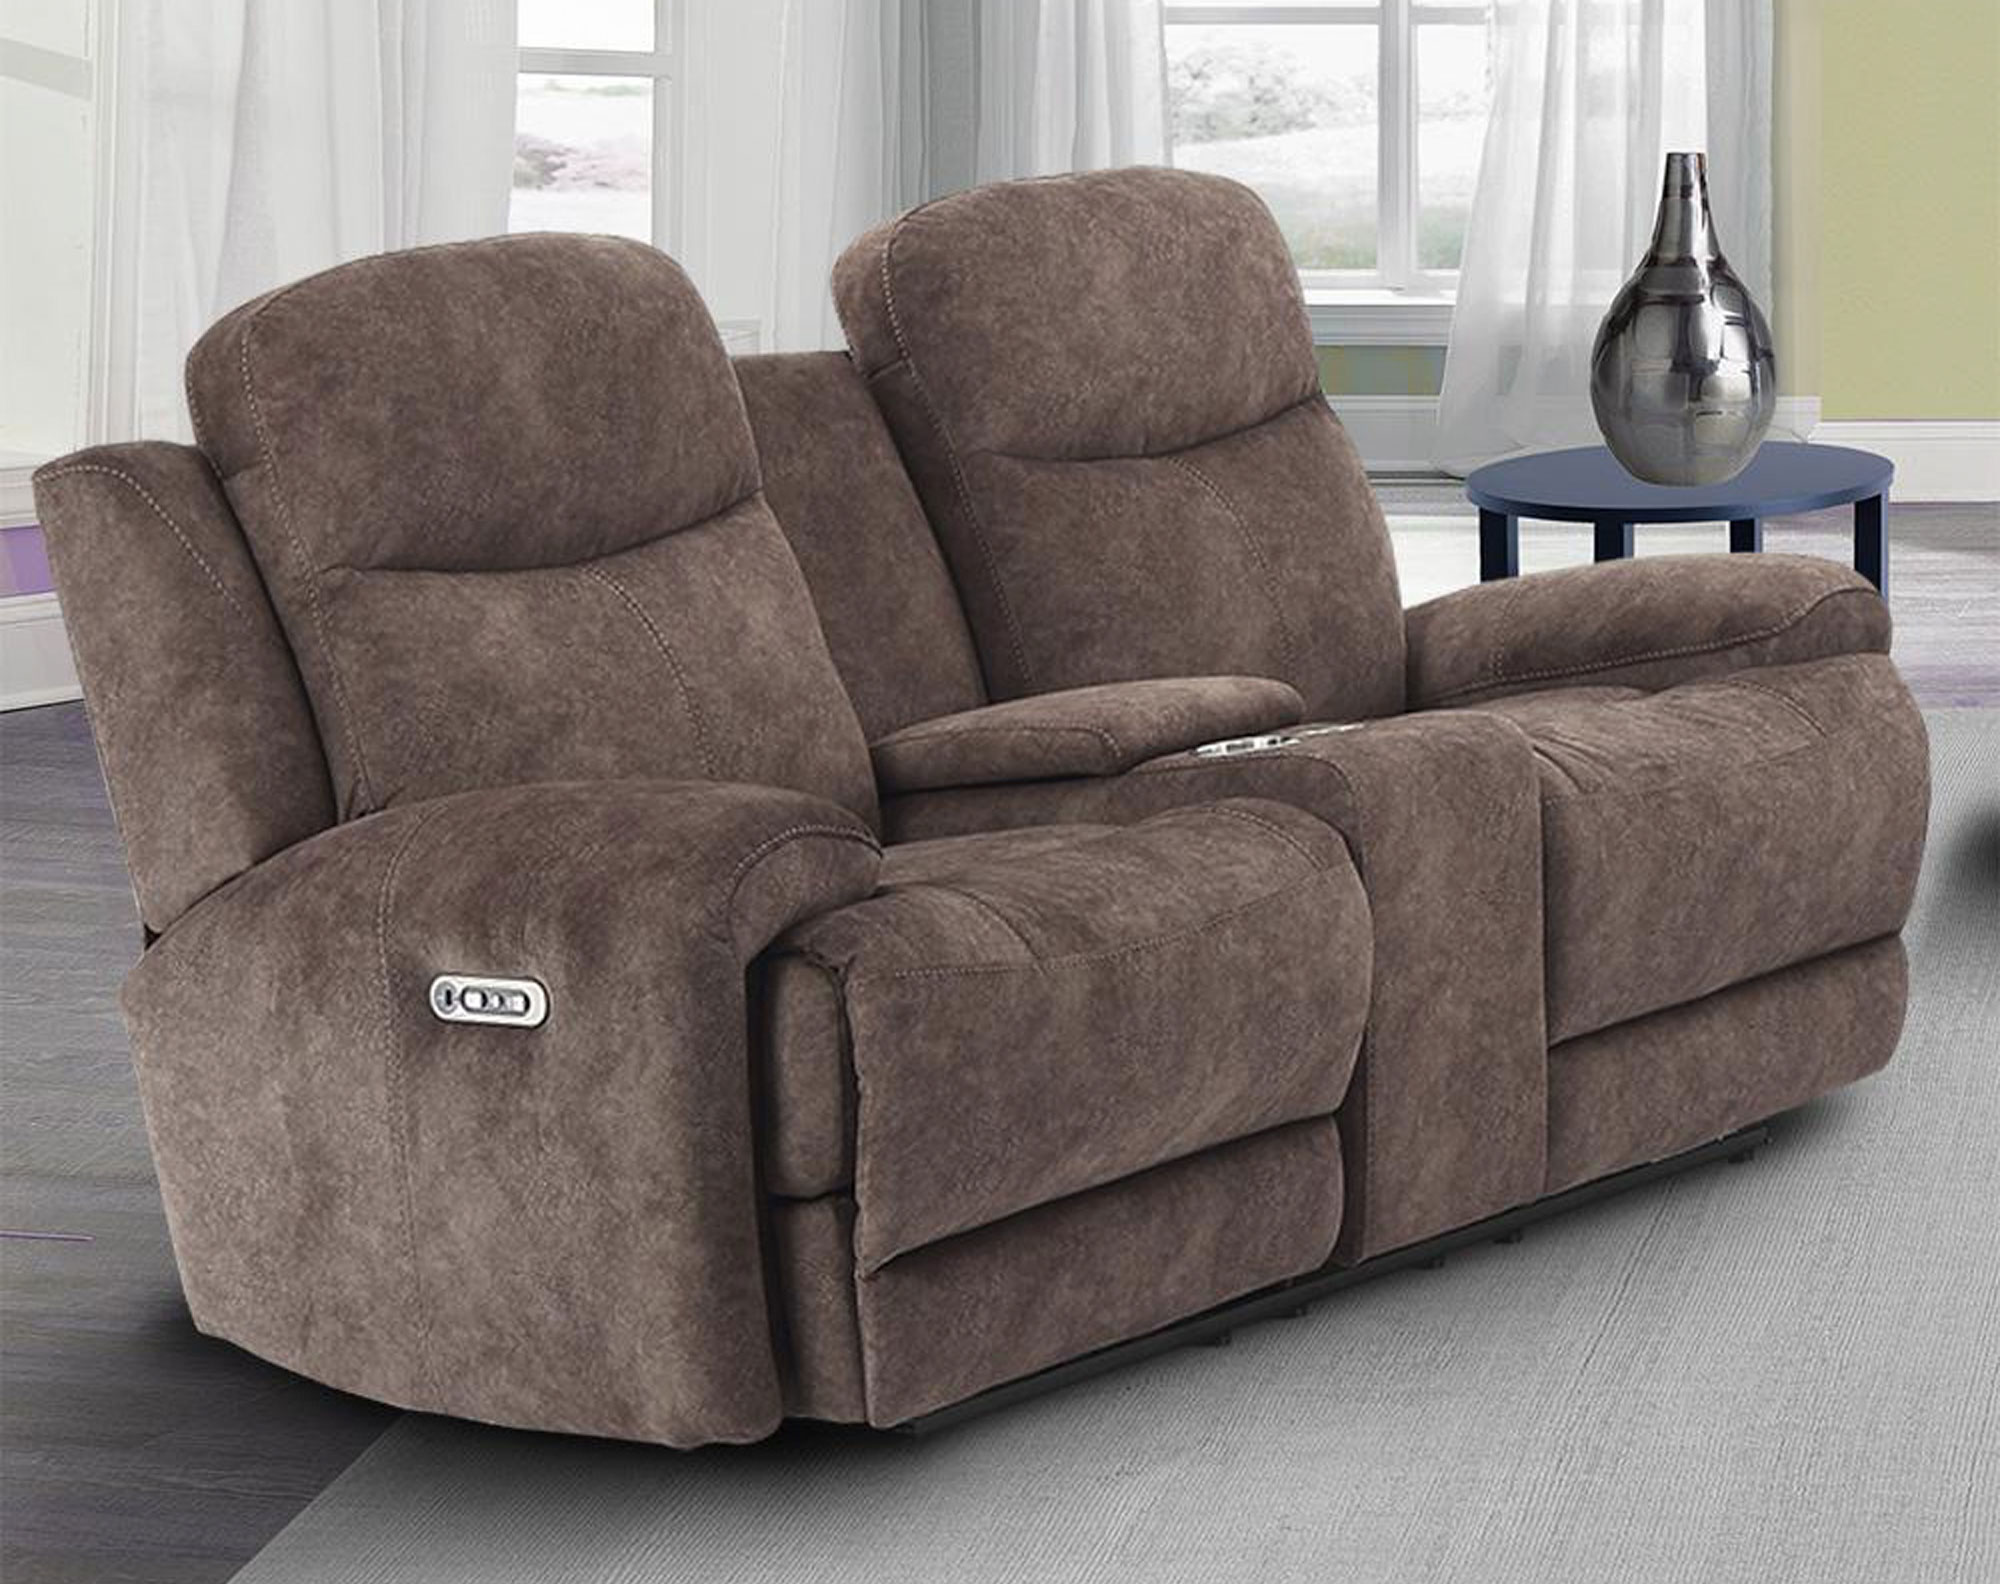 Pleasing Bowie Range Power Reclining Sofa With Power Sofas And Caraccident5 Cool Chair Designs And Ideas Caraccident5Info